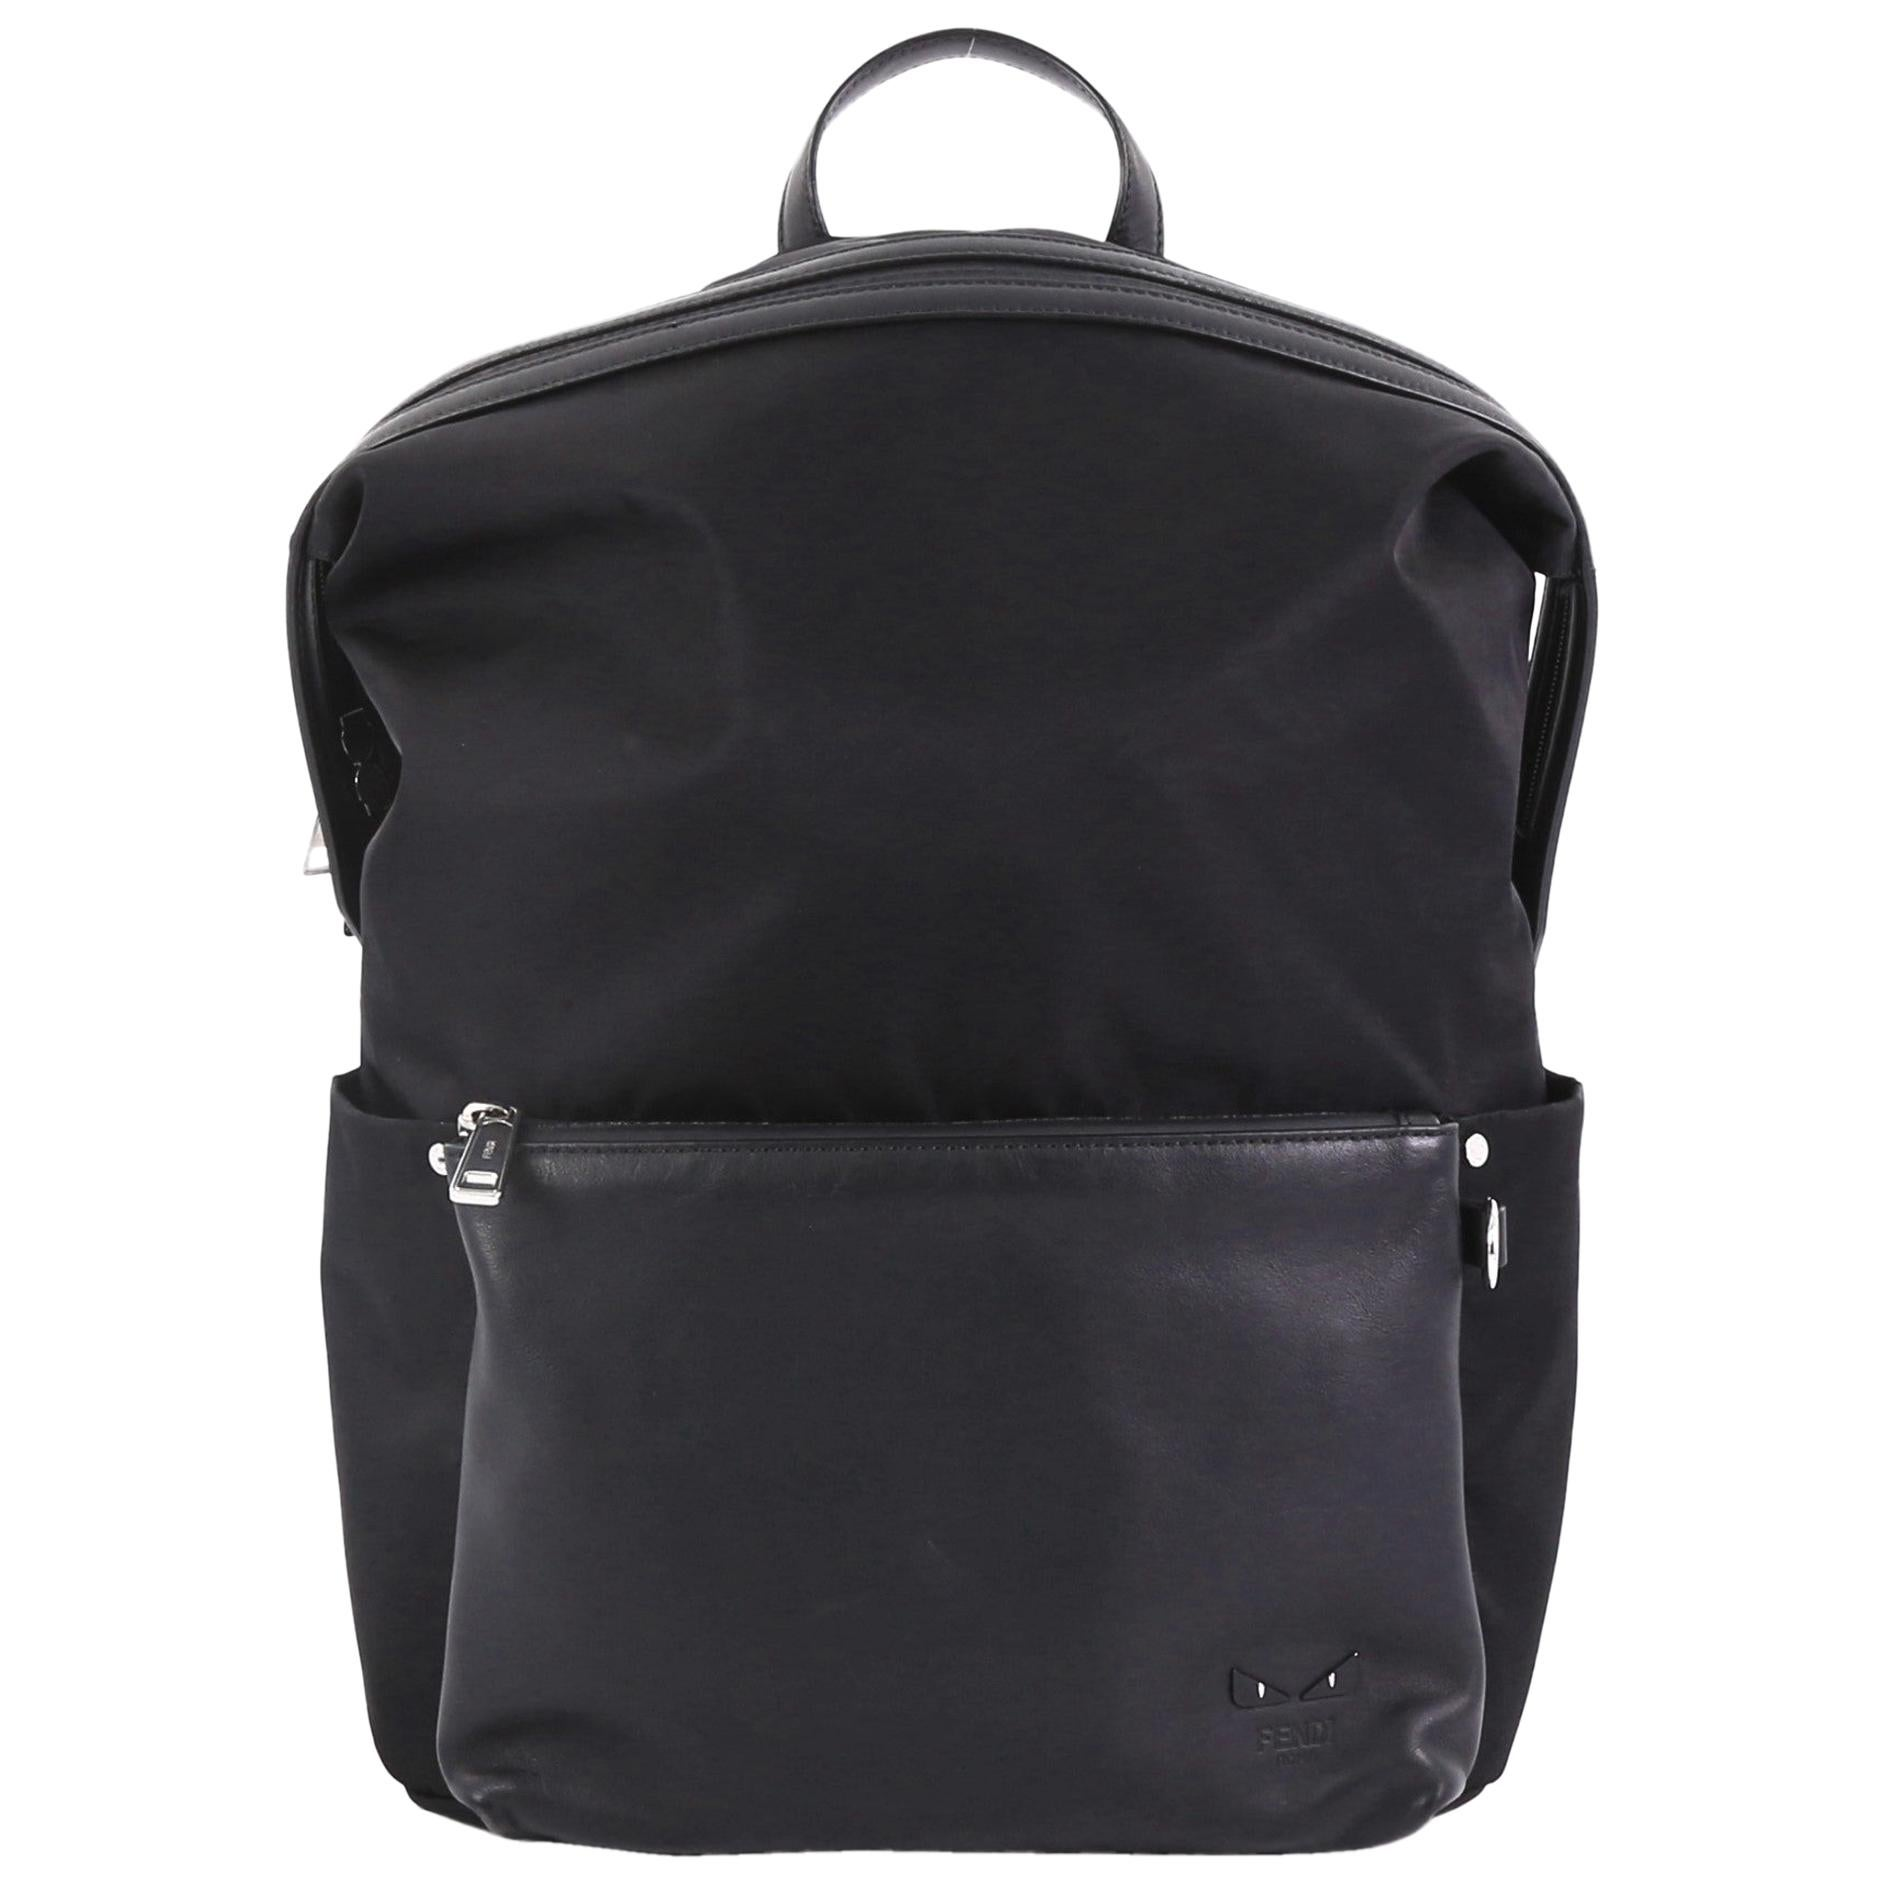 1b7b8ac58b1f Vintage and Designer Backpacks - 532 For Sale at 1stdibs